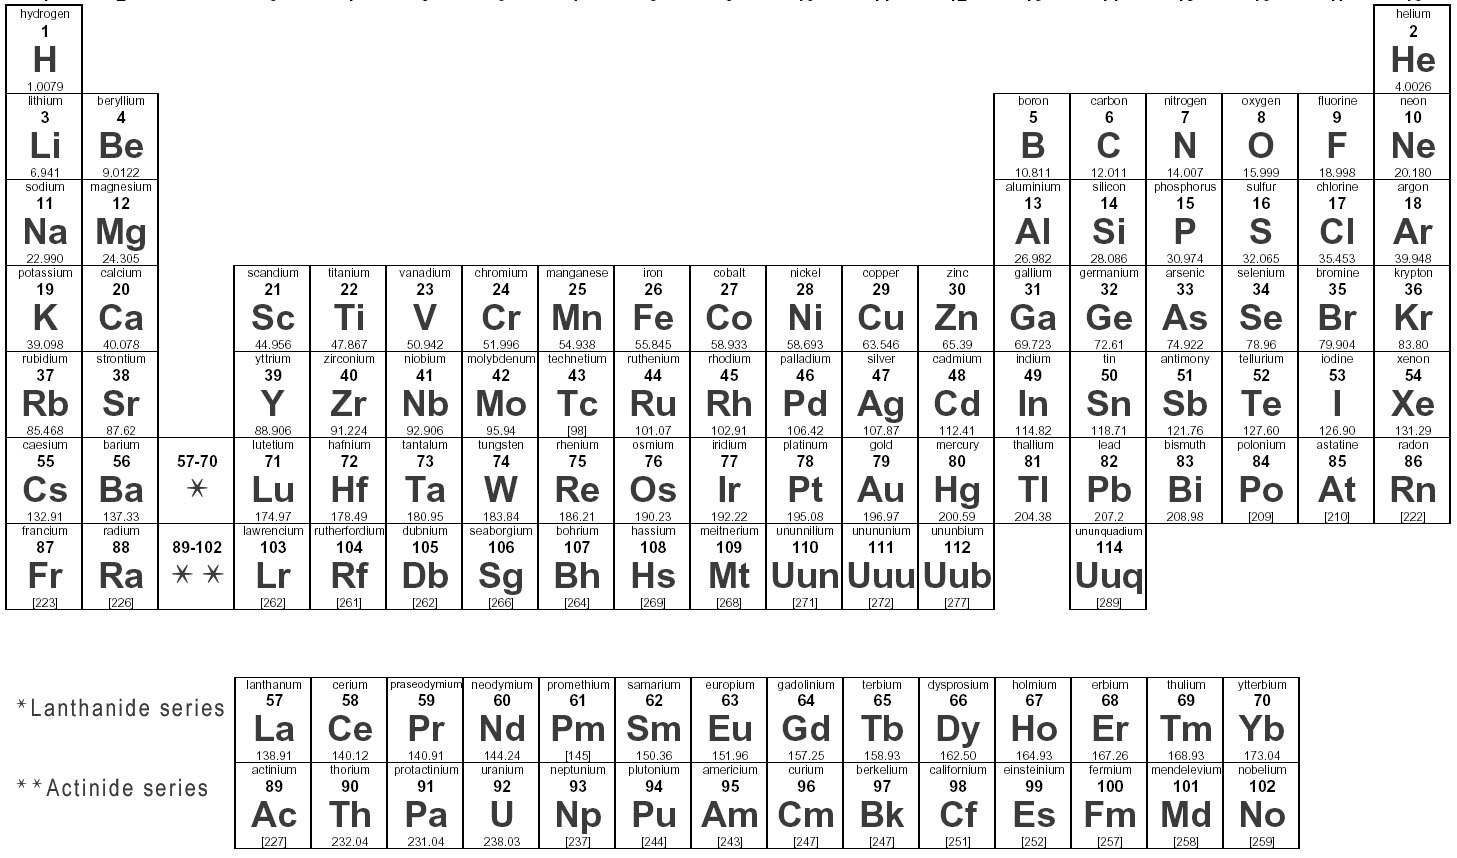 This is our current Periodic Table of Elements